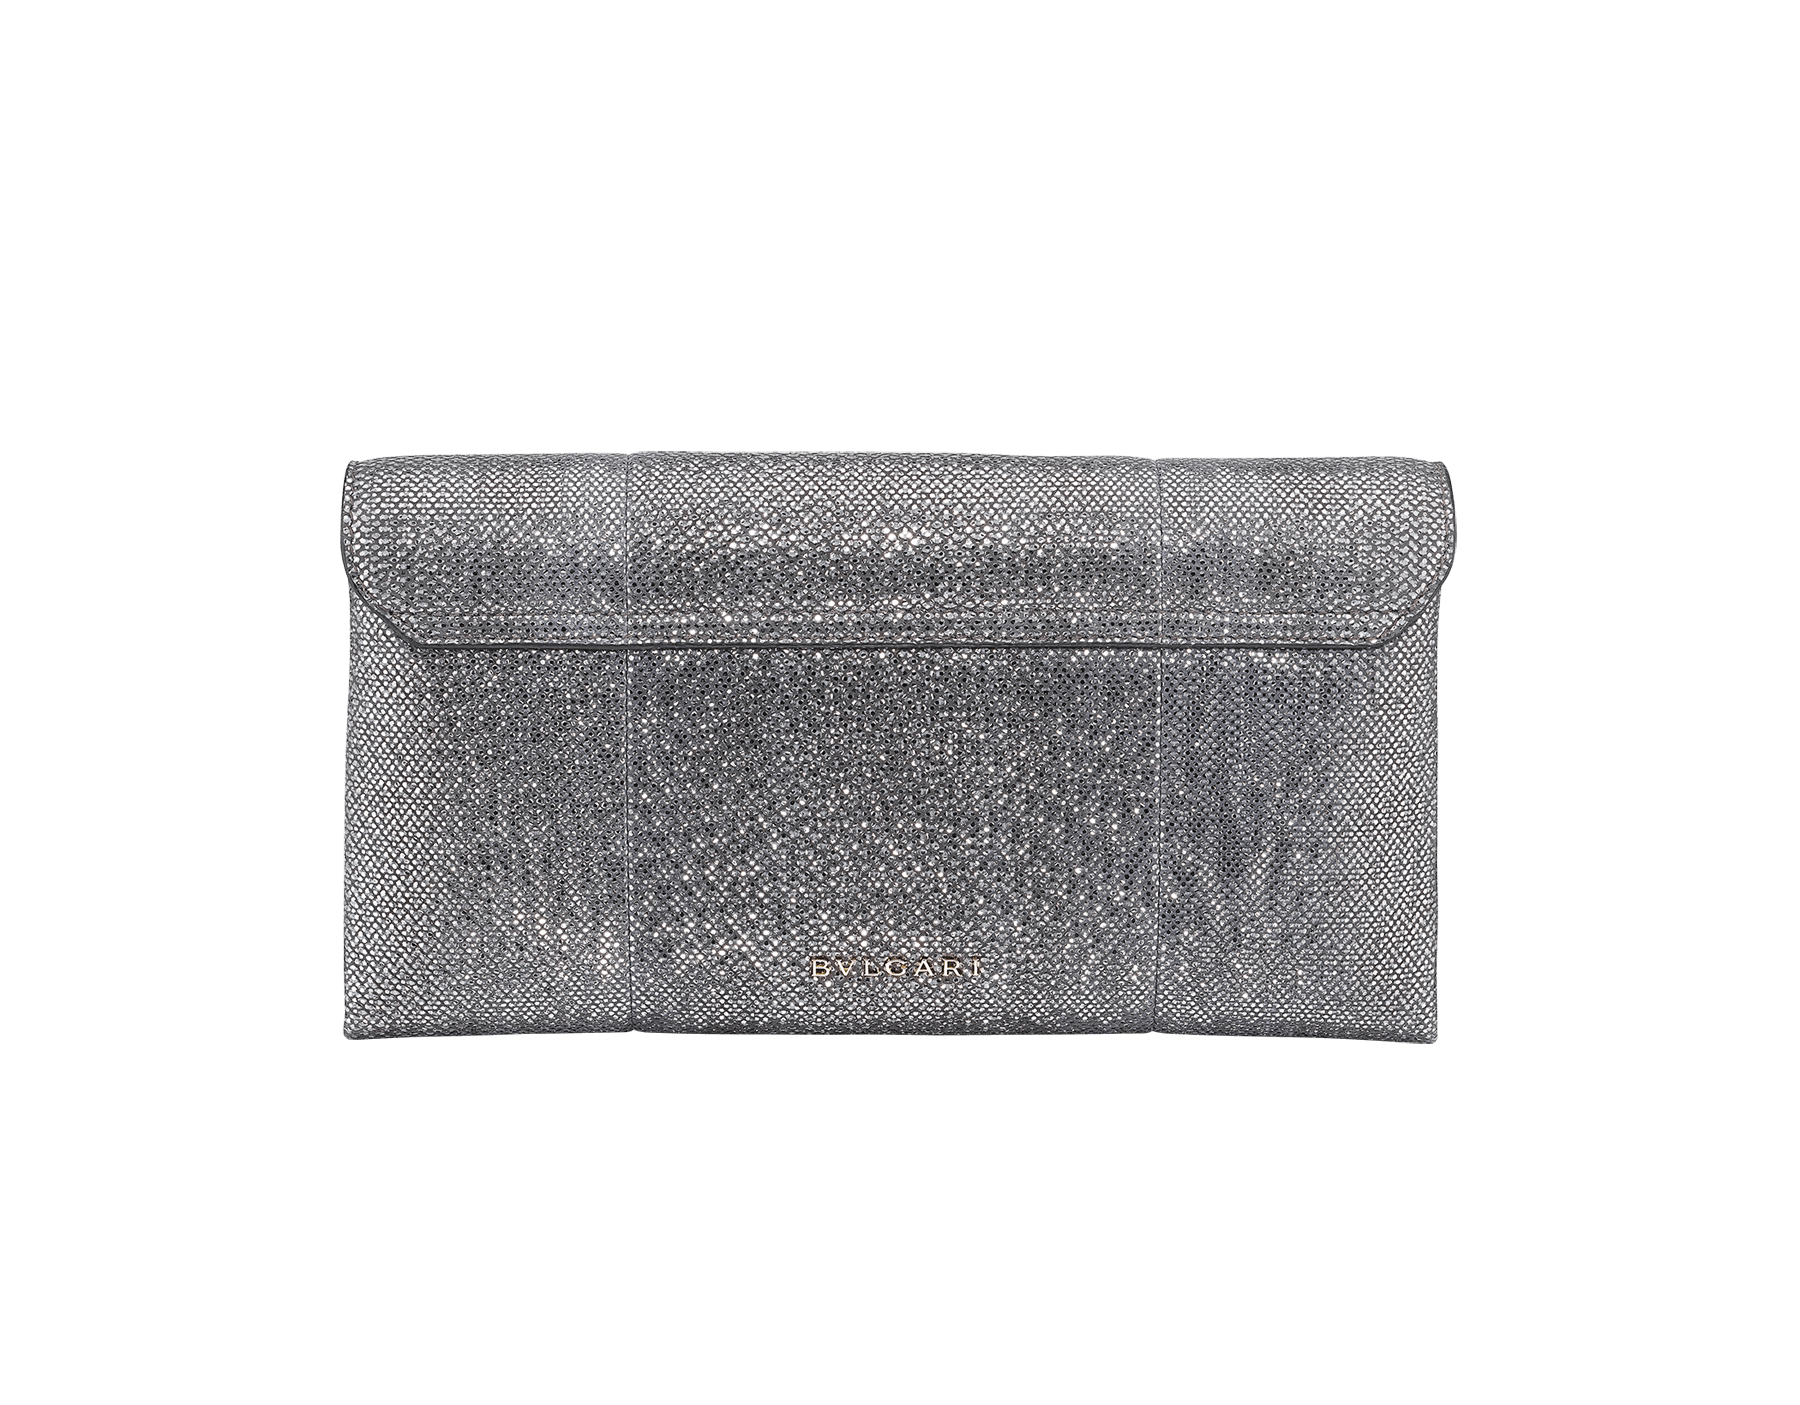 Serpenti evening clutch in charcoal diamond metallic karung skin. Snakehead stud closure with tassel in light gold plated brass decorated with black and glitter charcoal diamond enamel, and black onyx eyes. 288165 image 3